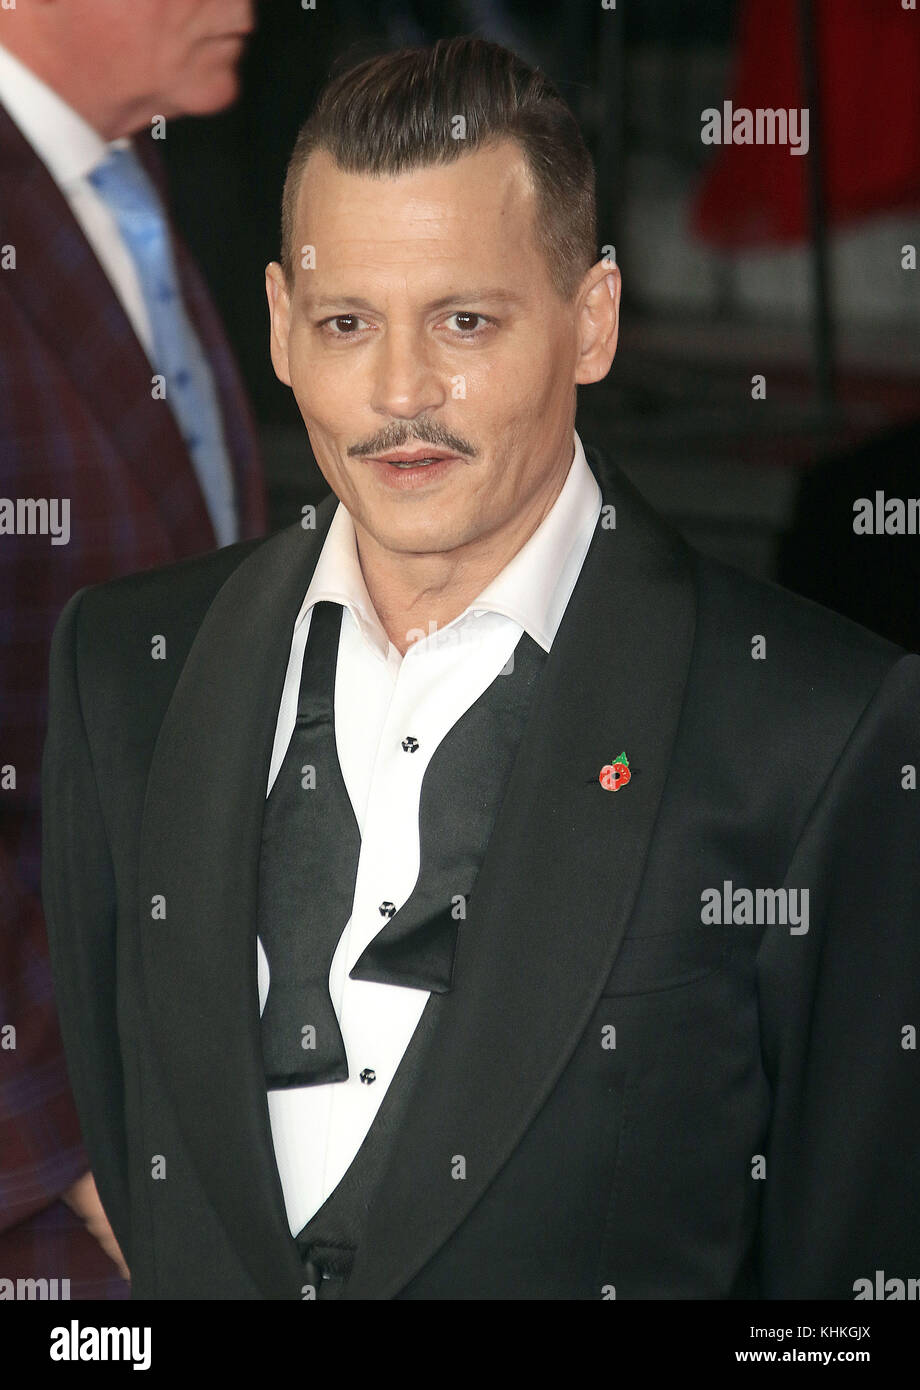 Nov 02, 2017 - Johnny Depp attending Murder On The Orient Express' World Premiere, Royal Albert Hall in London, - Stock Image